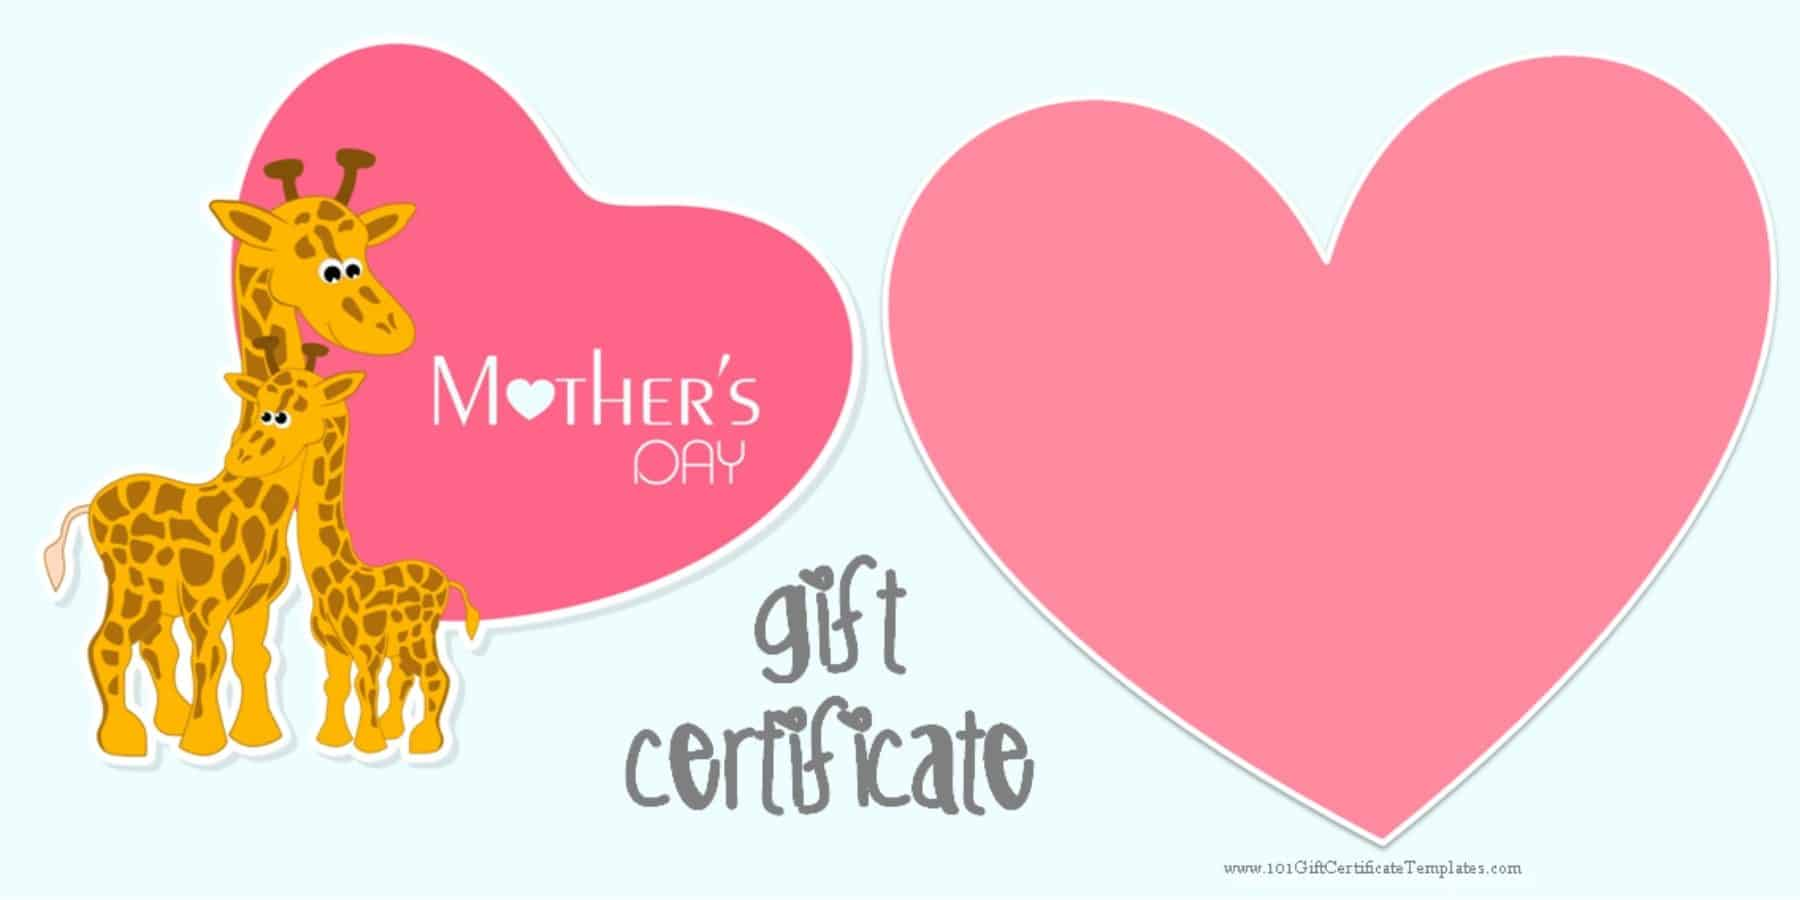 Mothers day gift certificate templates free printable mothers day gift certificate template yelopaper Image collections